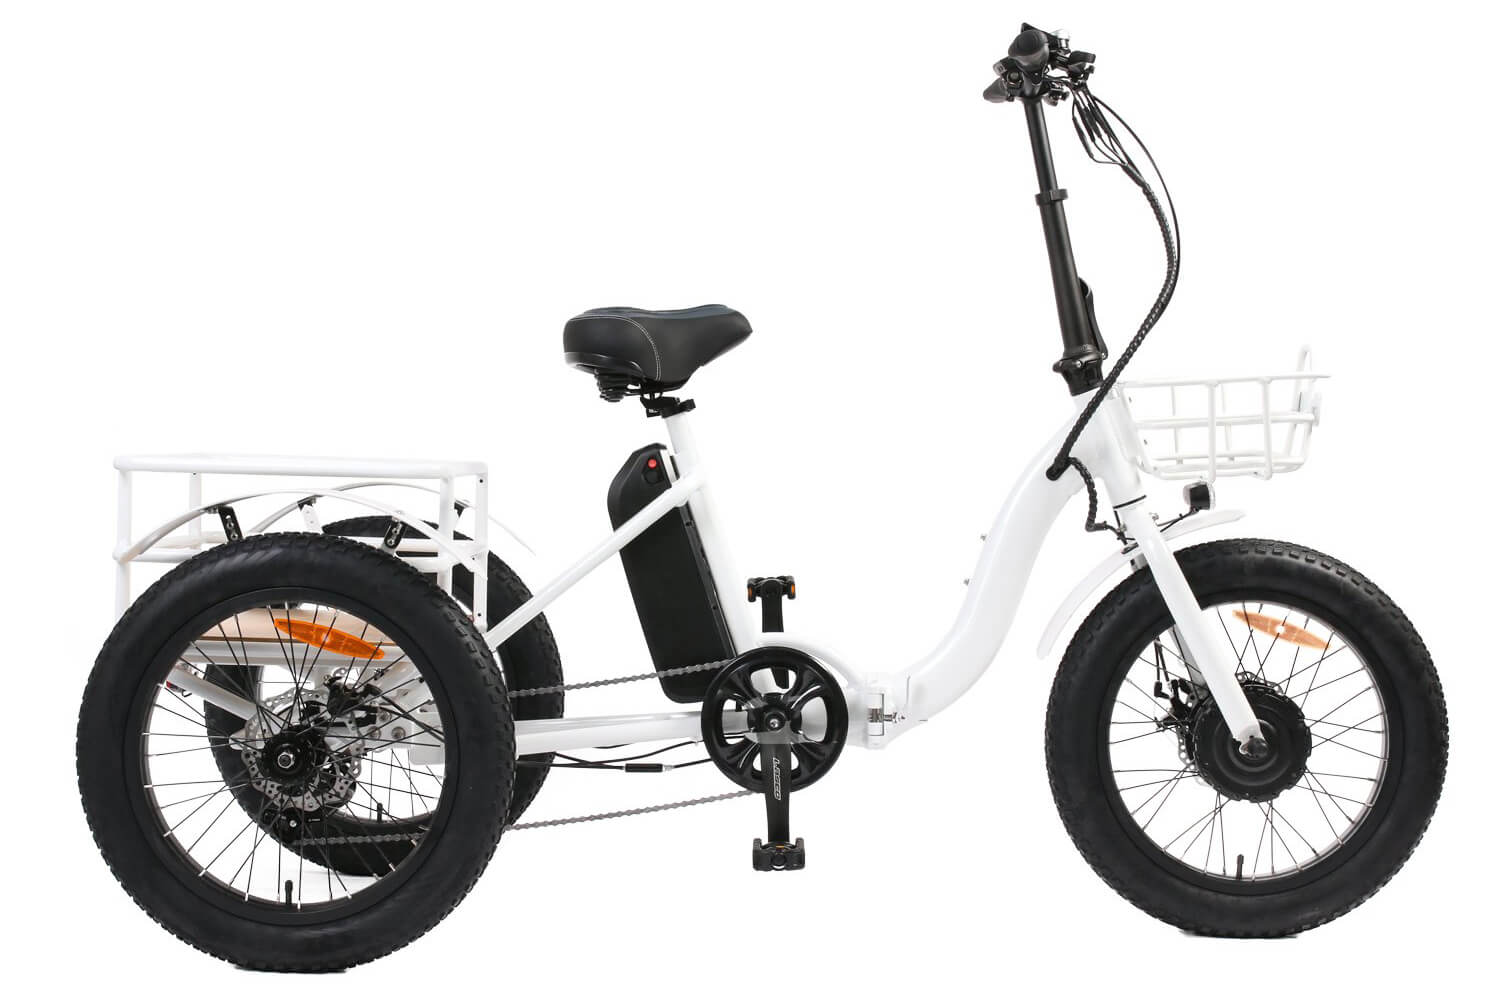 Eunorau NEW-TRIKE 48V500W 20'' Step-Through Fat Tire Folding Electric Tricycle White